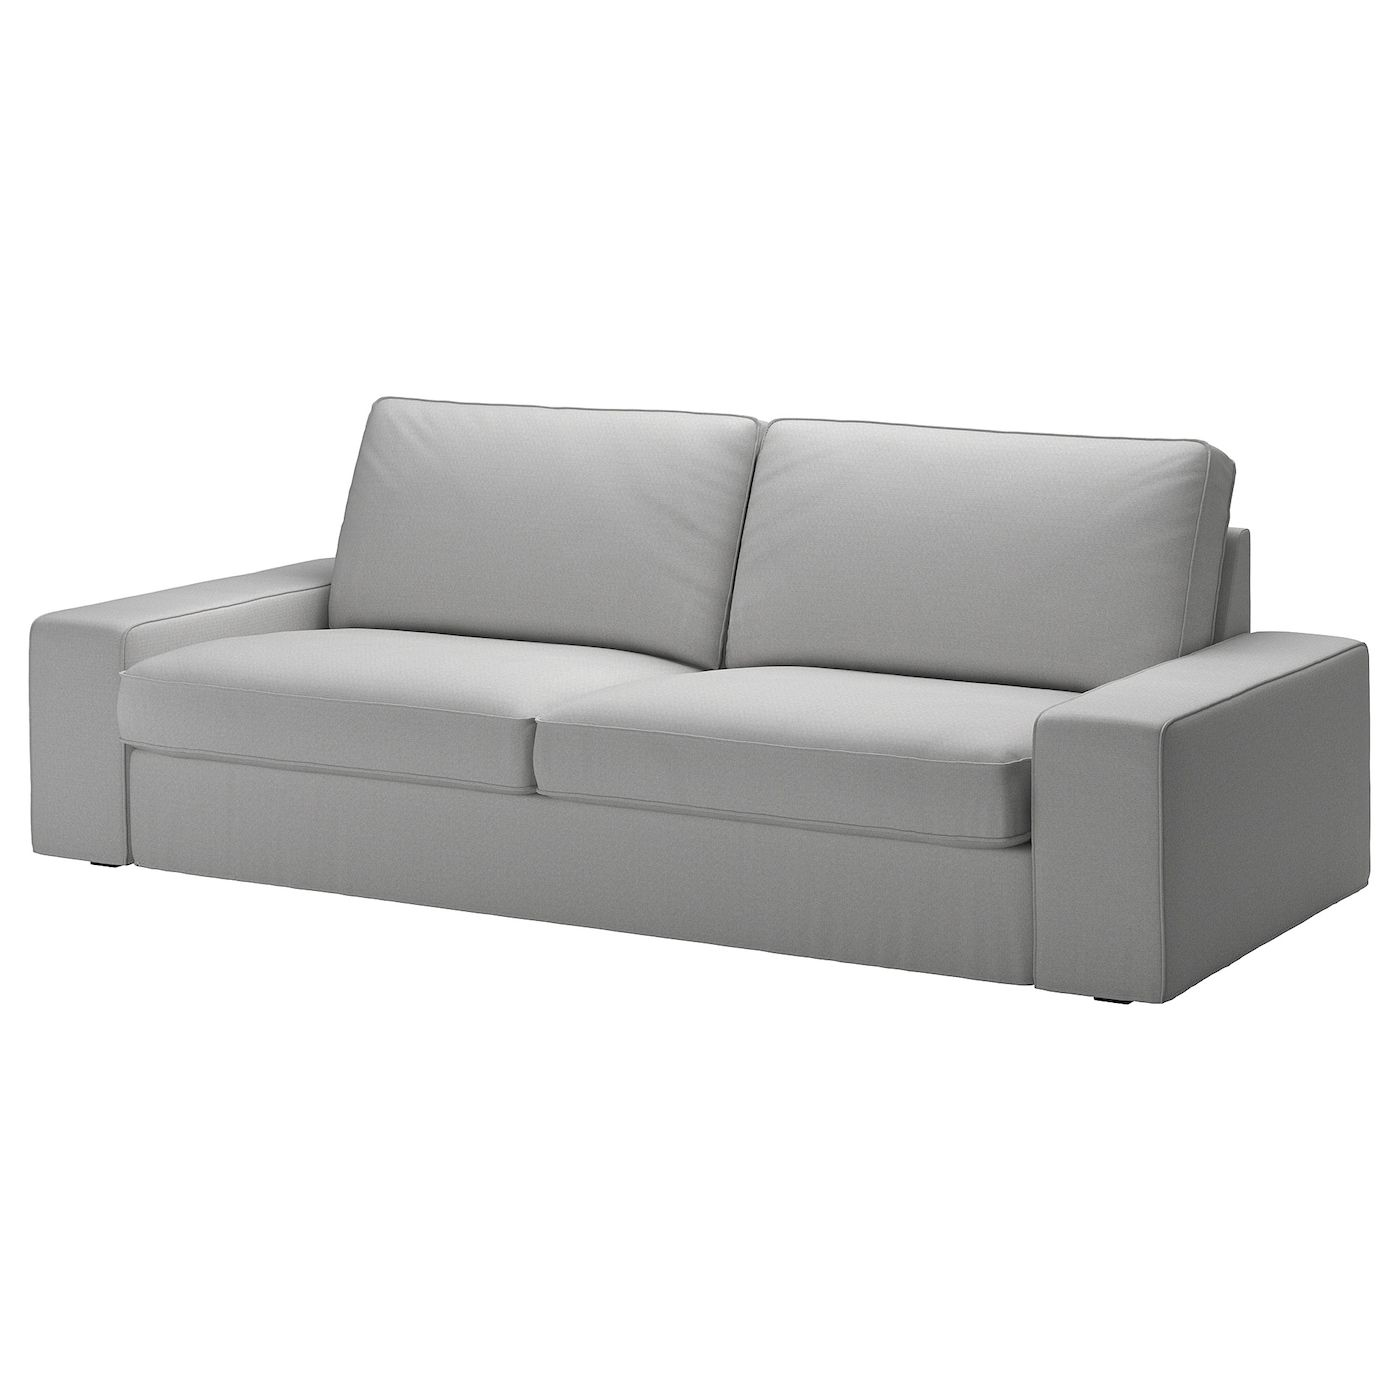 Us Furniture And Home Furnishings Canape 3 Places Canape Gris Clair Housse Canape